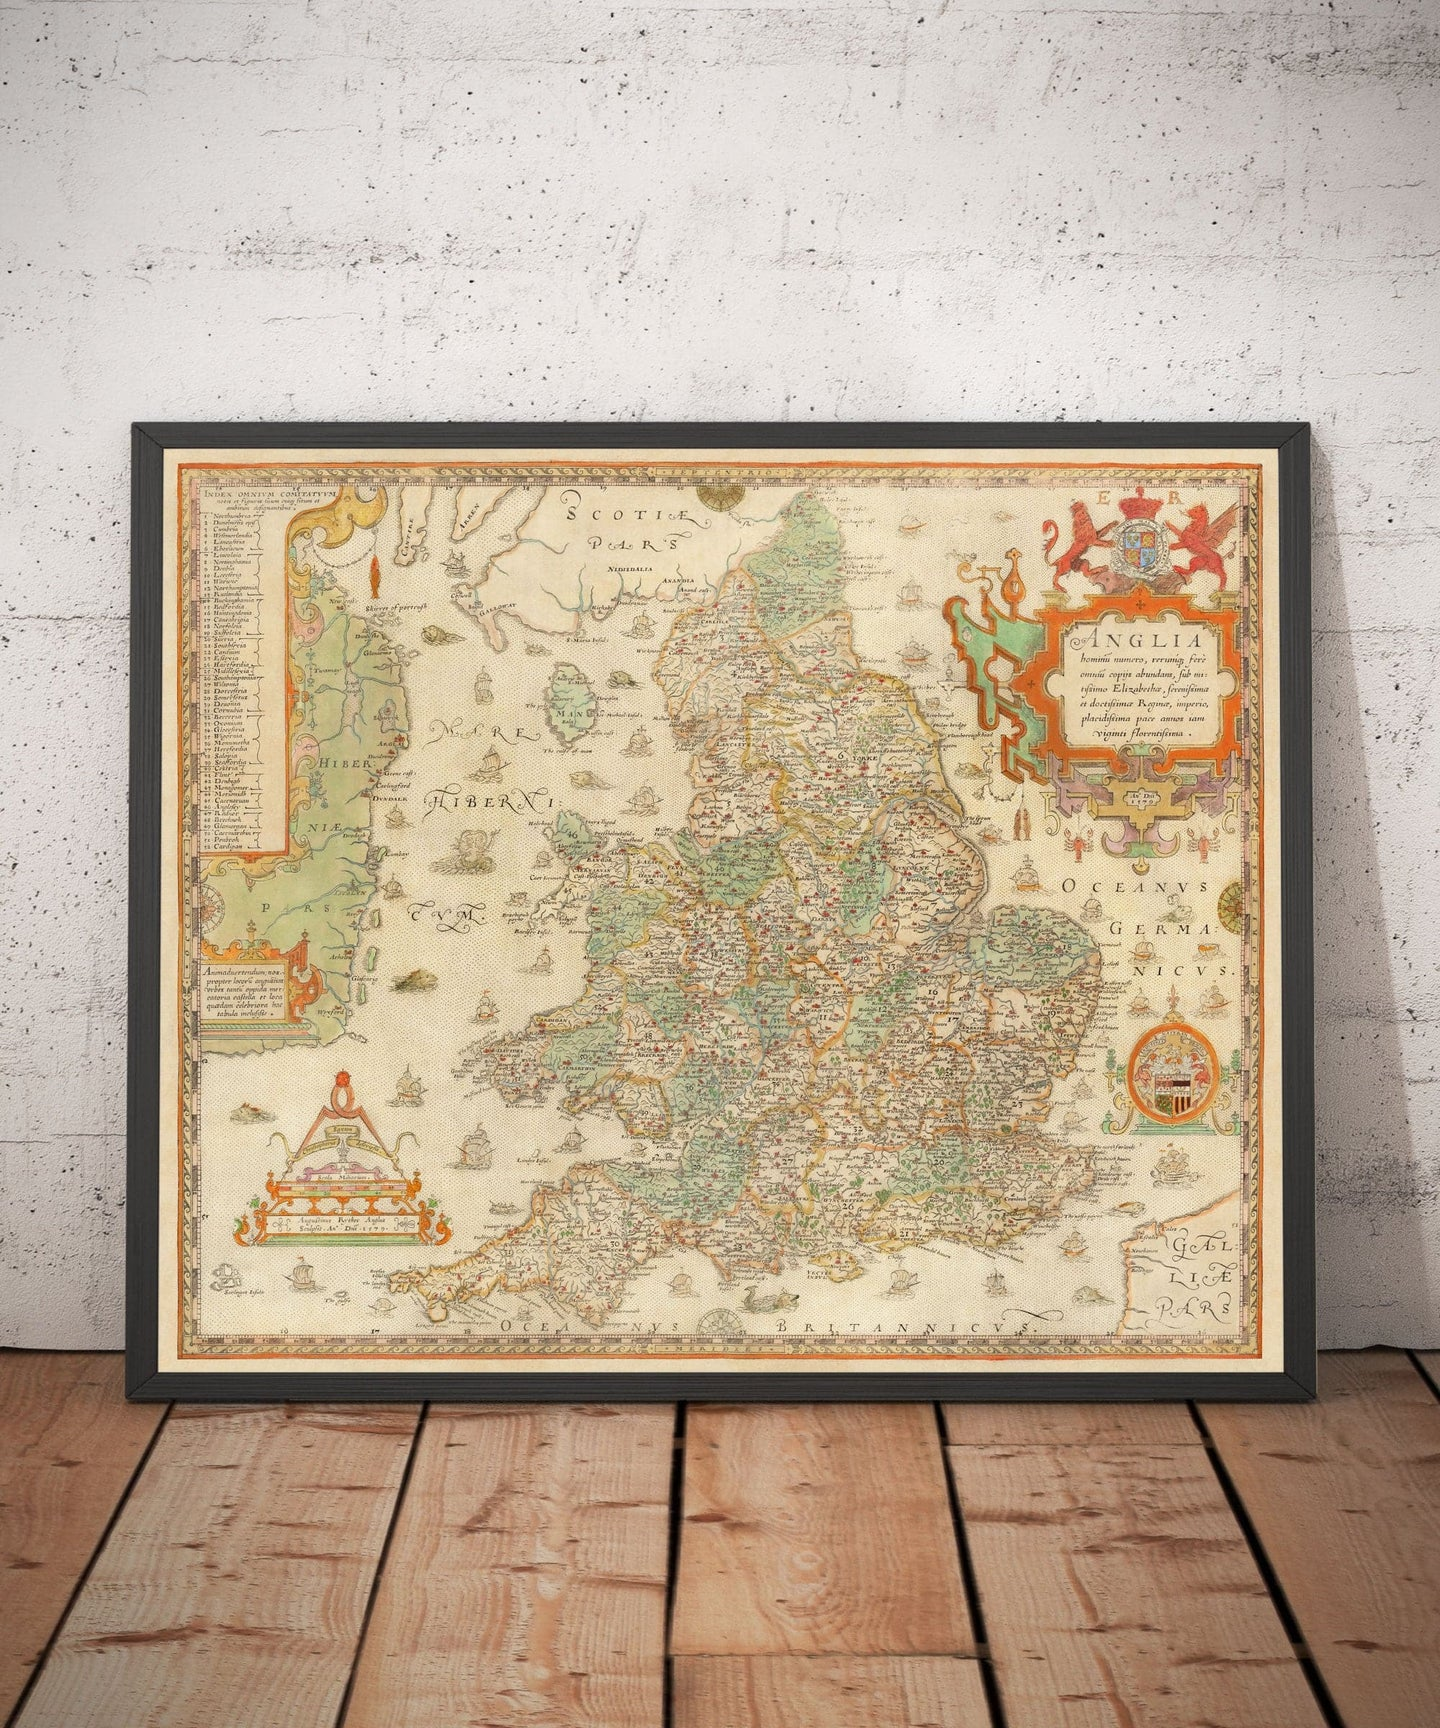 Old Map of England & Wales, 1579 by Christopher Saxton - First Printed Map of British Isles - UK, Britain - Antique Vintage Wall Art - Framed, Unframed